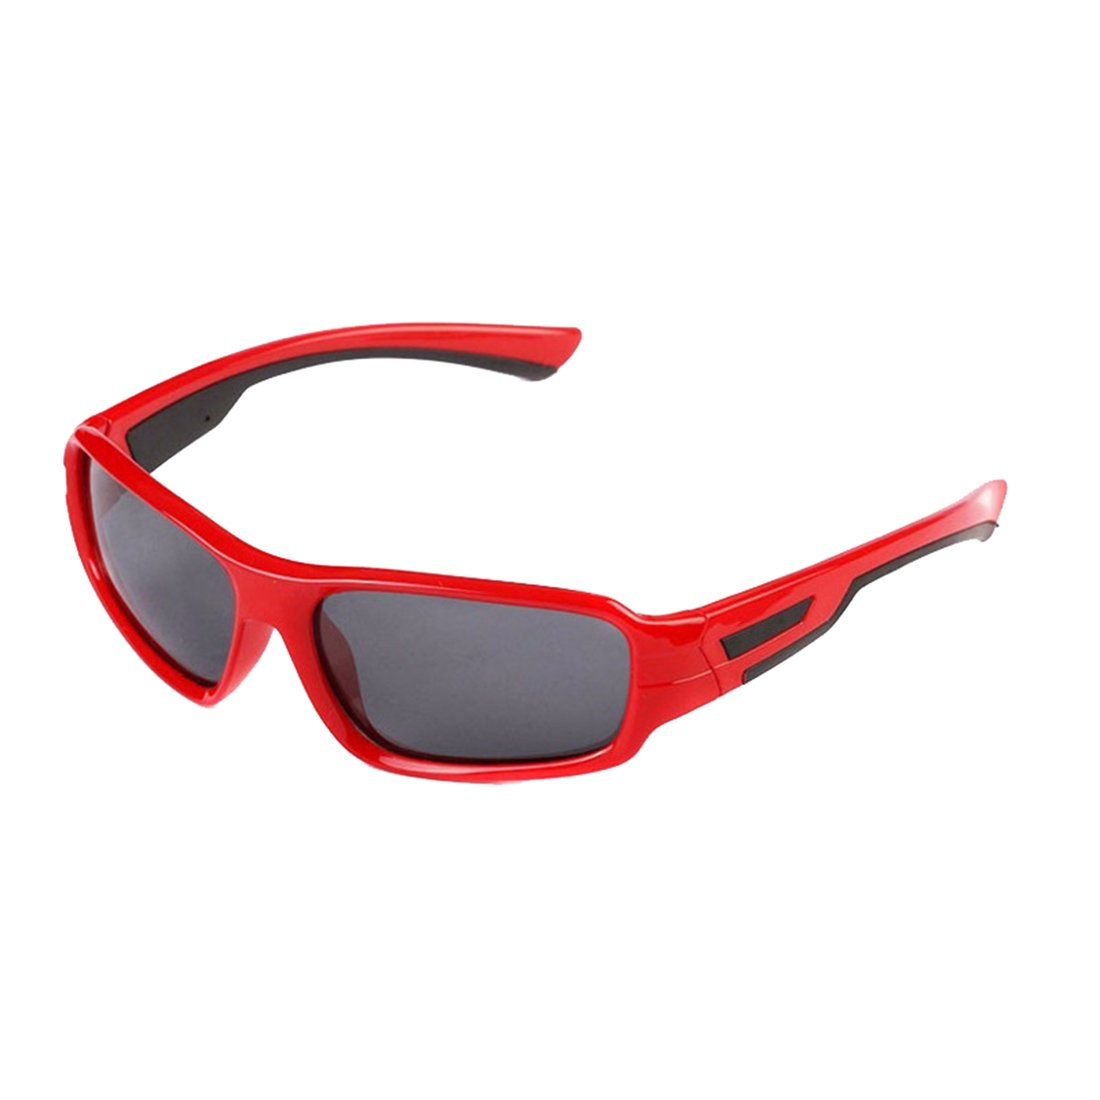 Tmore Outdoor Polarized Sunglasses for Children Portable TAC Kids Sports Sunglasses with Protection Lens for Youth Boys Girls (Red)